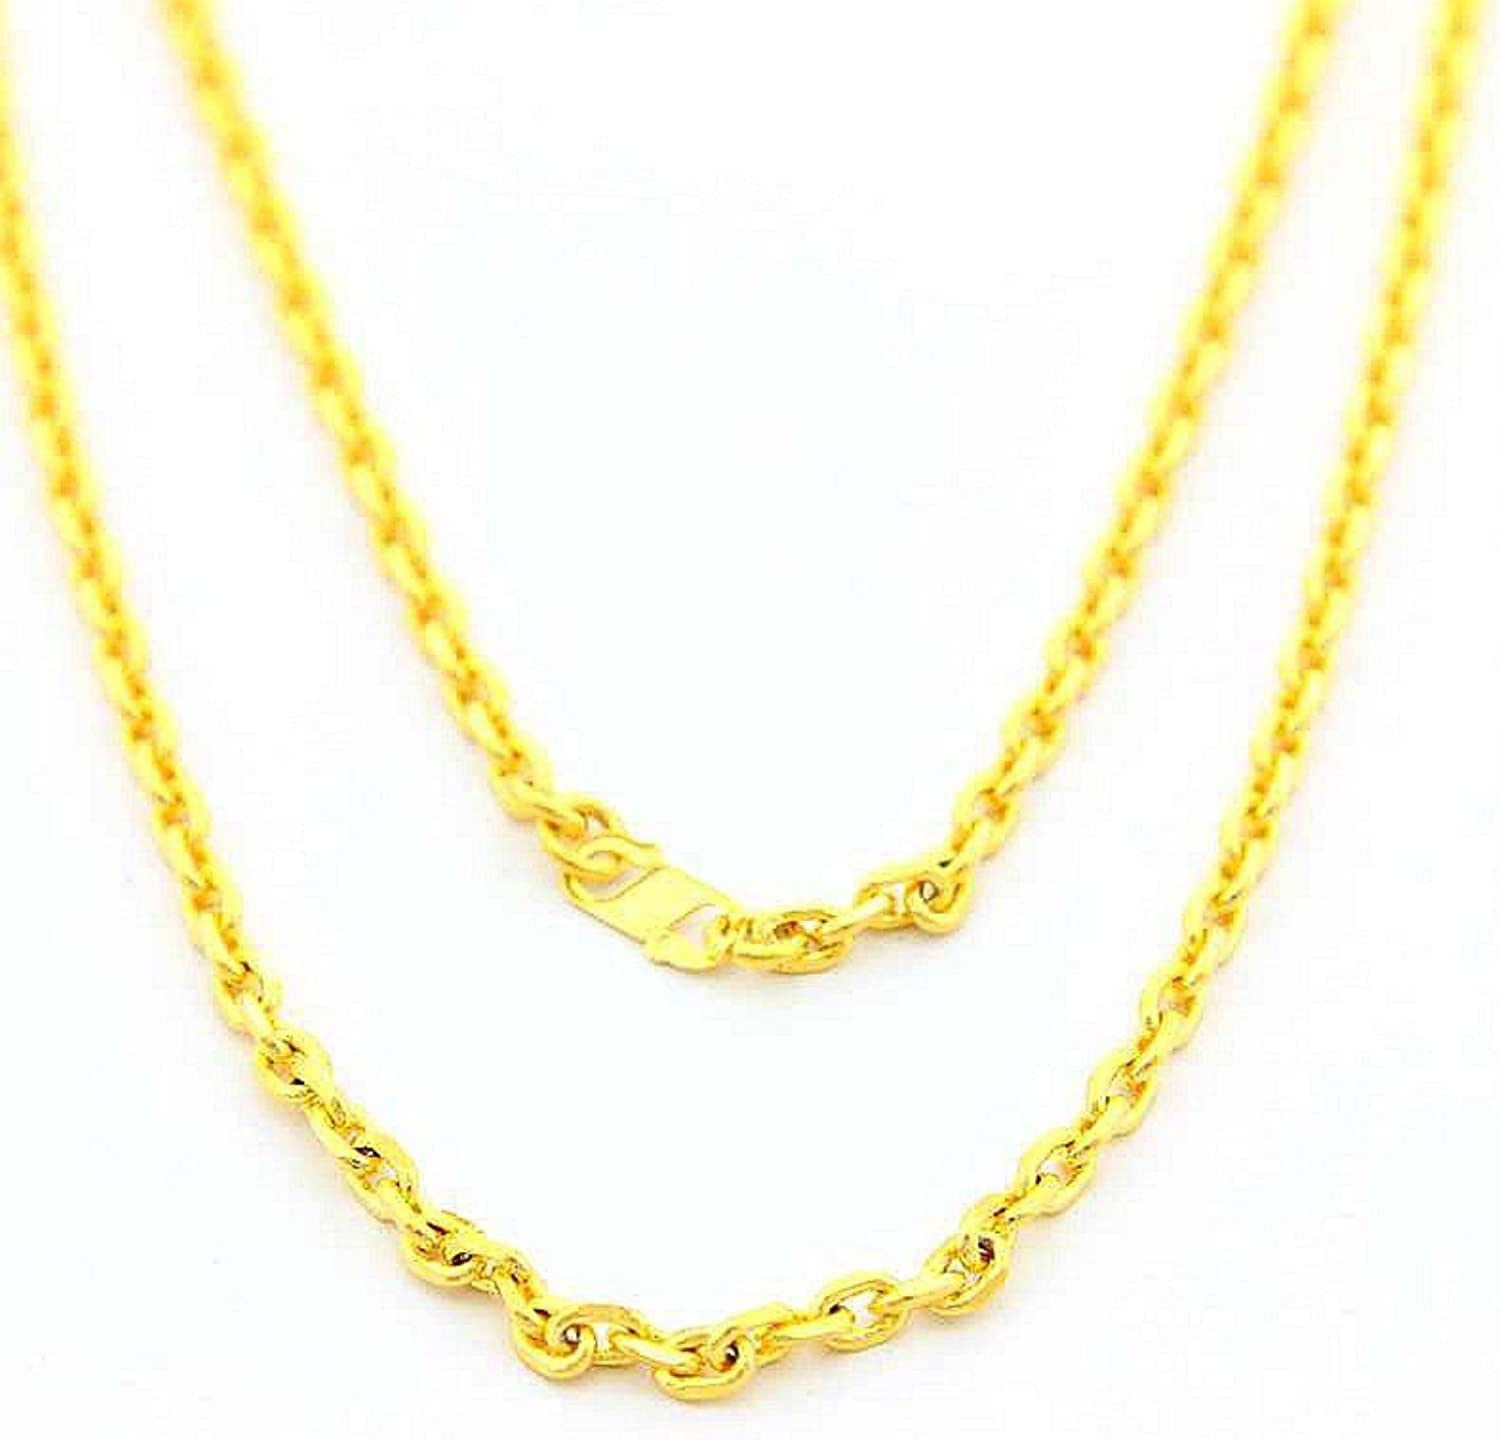 CS-DB Gold 24K Gold Plated Link Circle Chian Men Women Chains Necklace 1.5MM 18inch